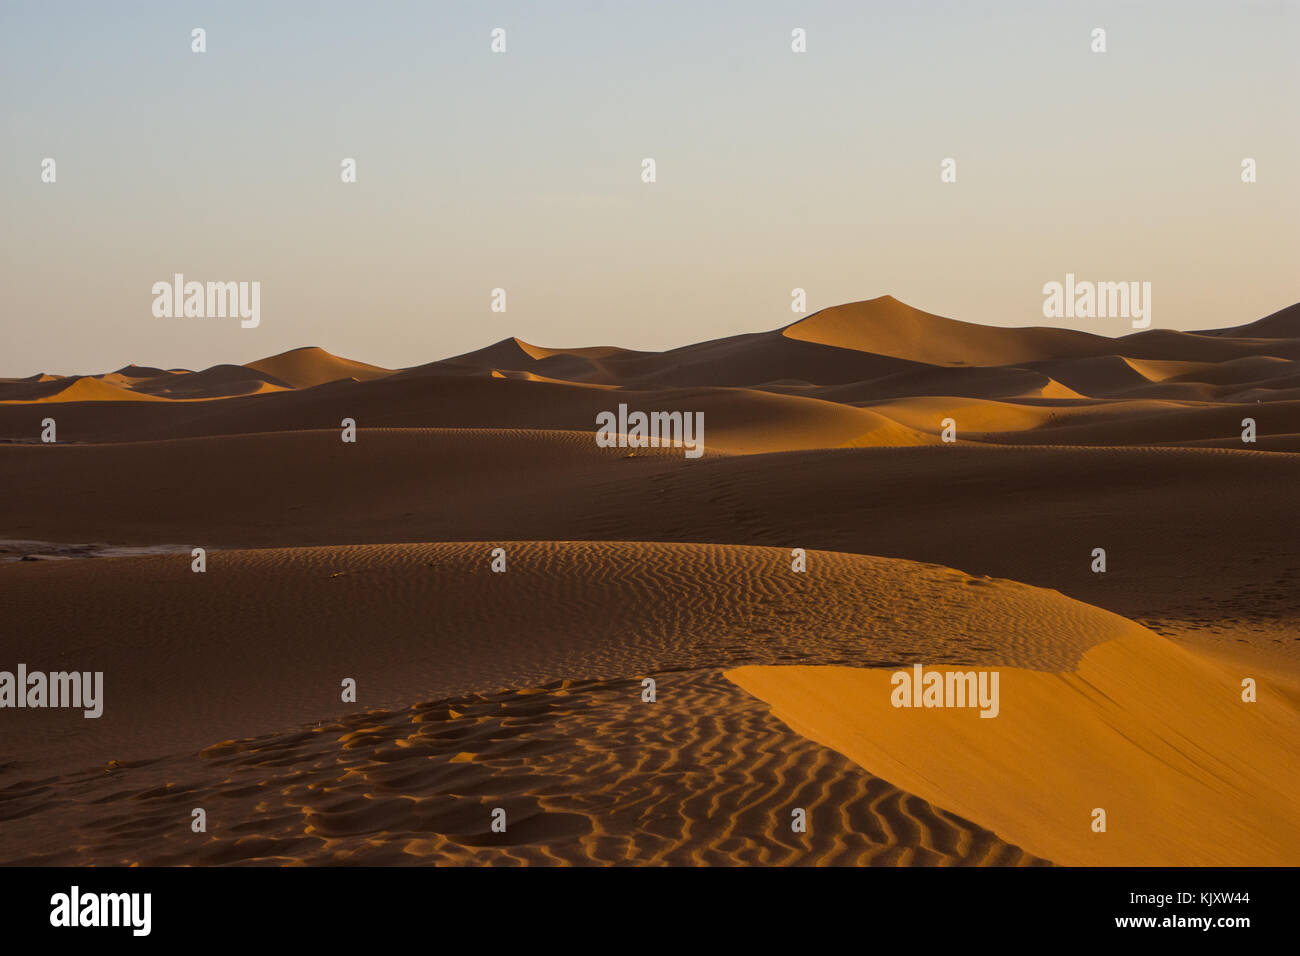 The largest desert in the world 48